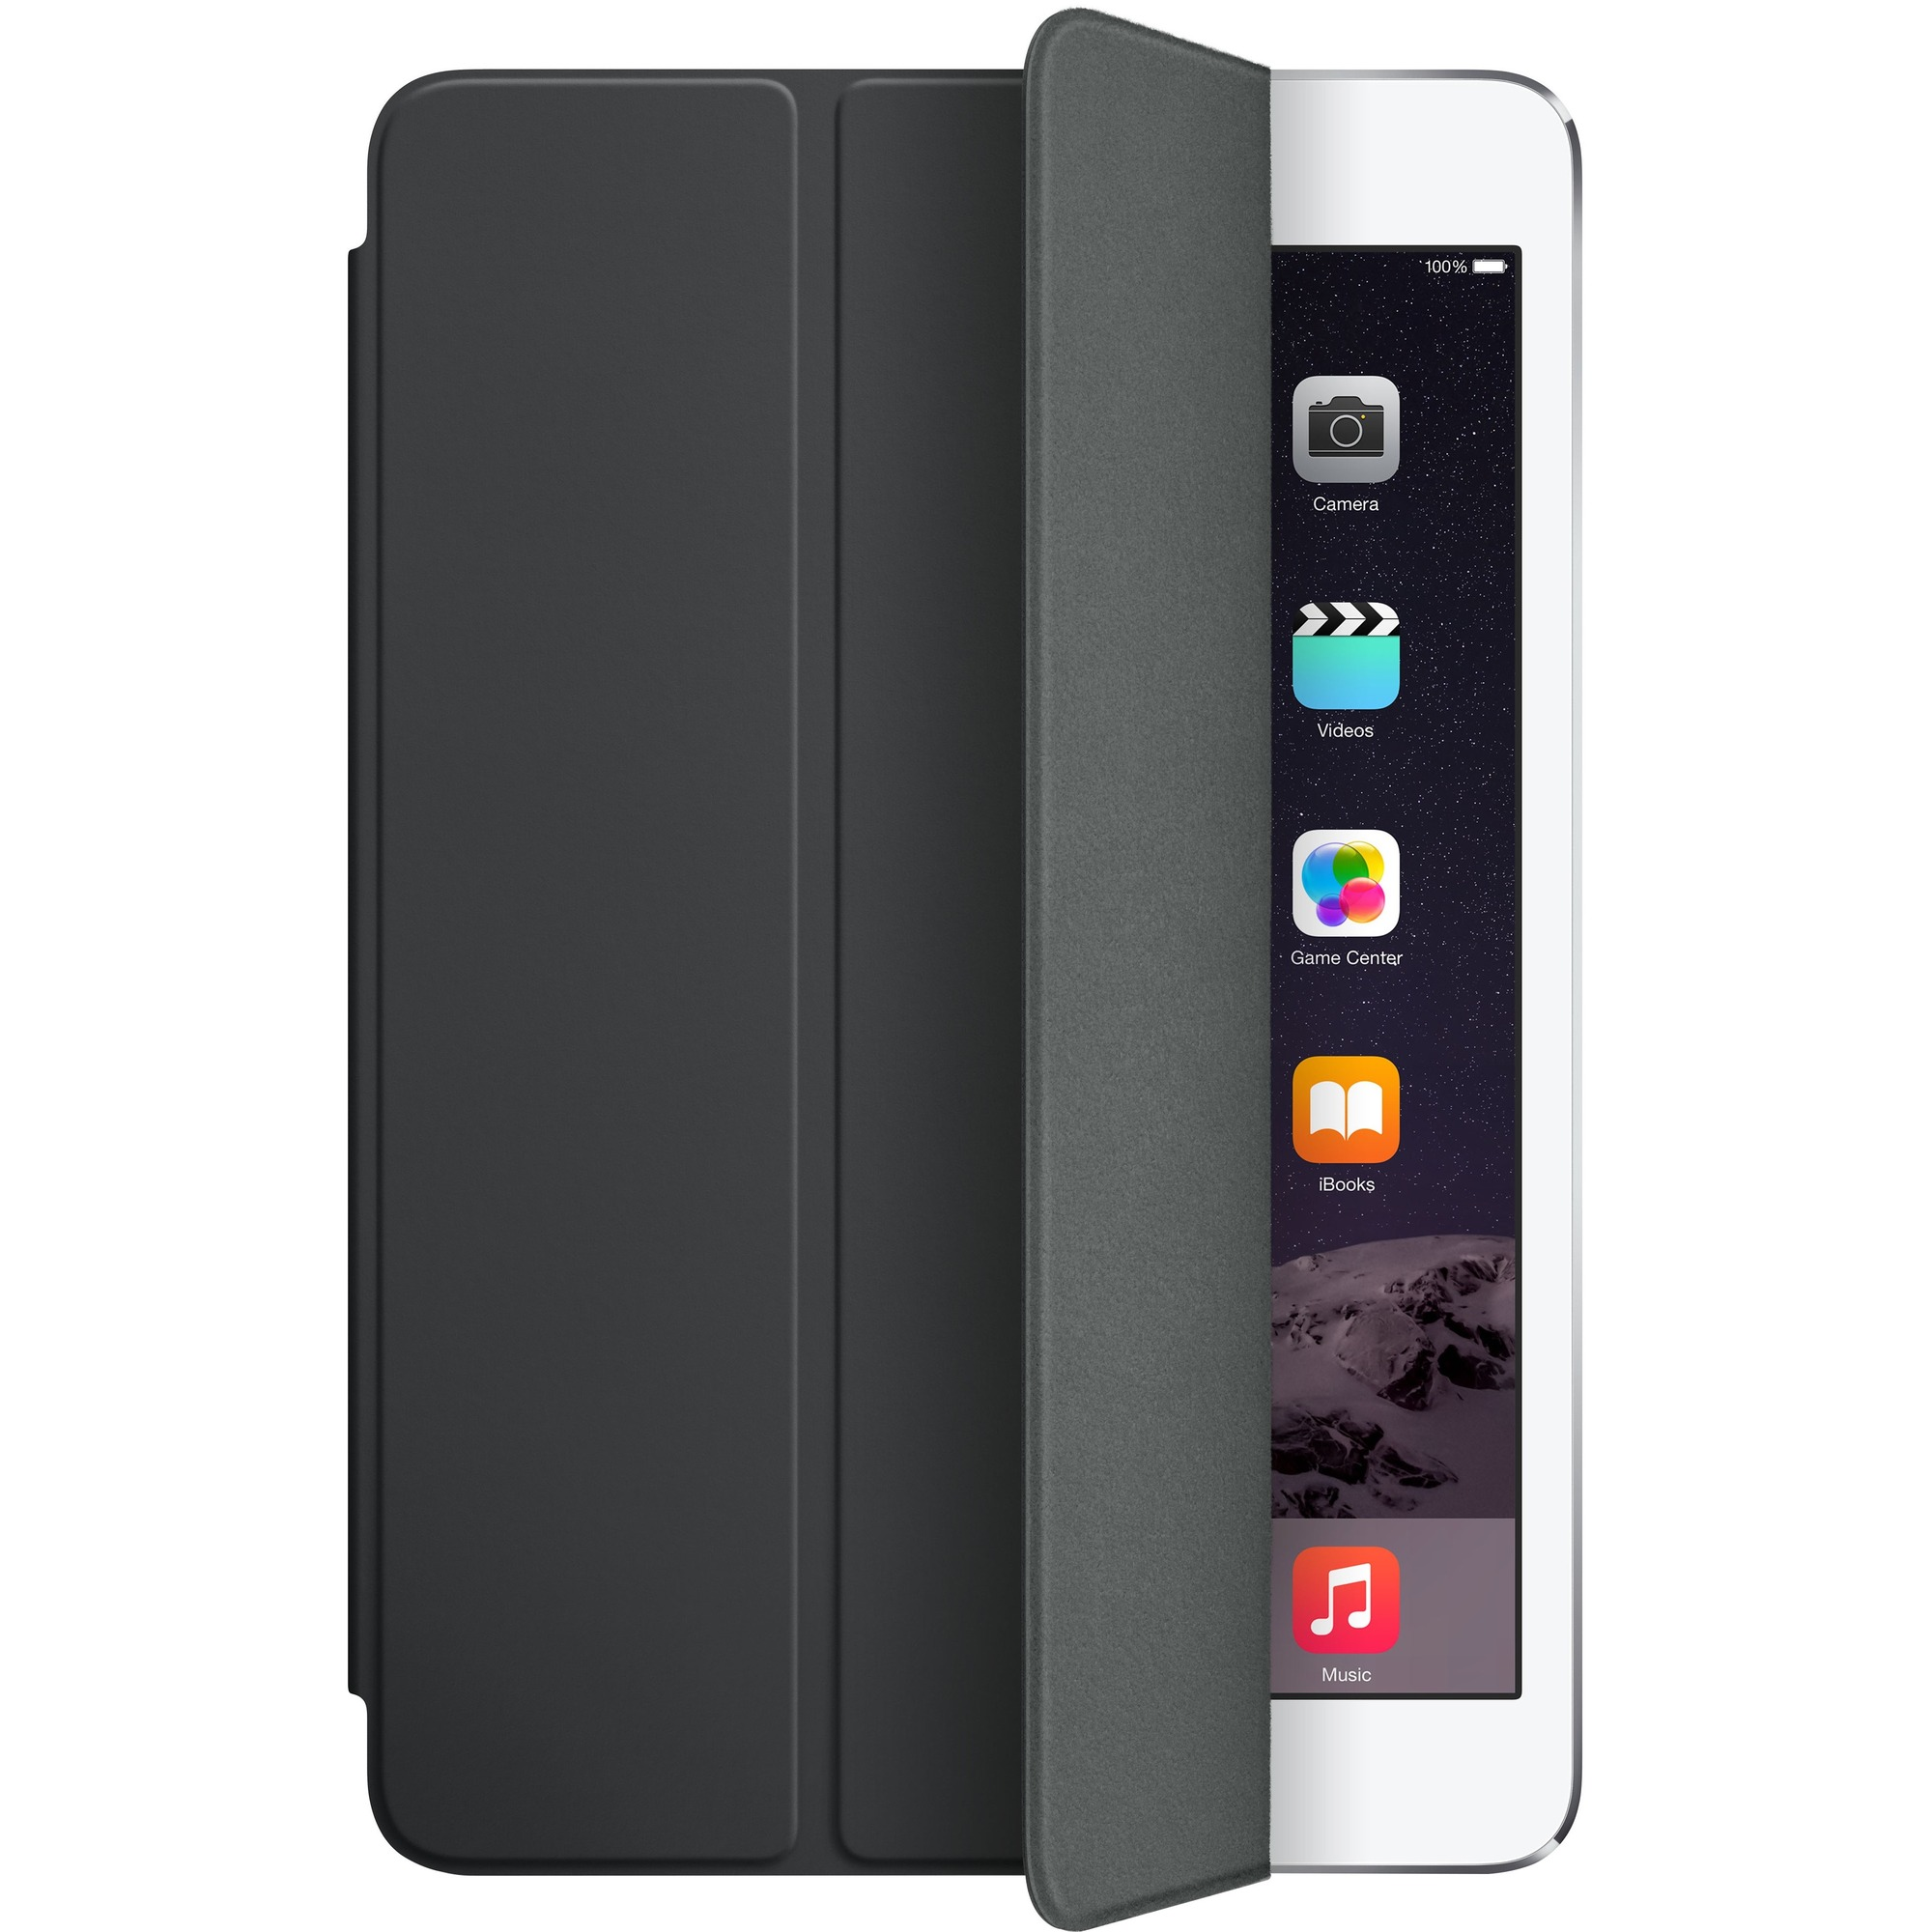 Apple Carrying Case for iPad mini, iPad mini 2, iPad mini 3 - Black